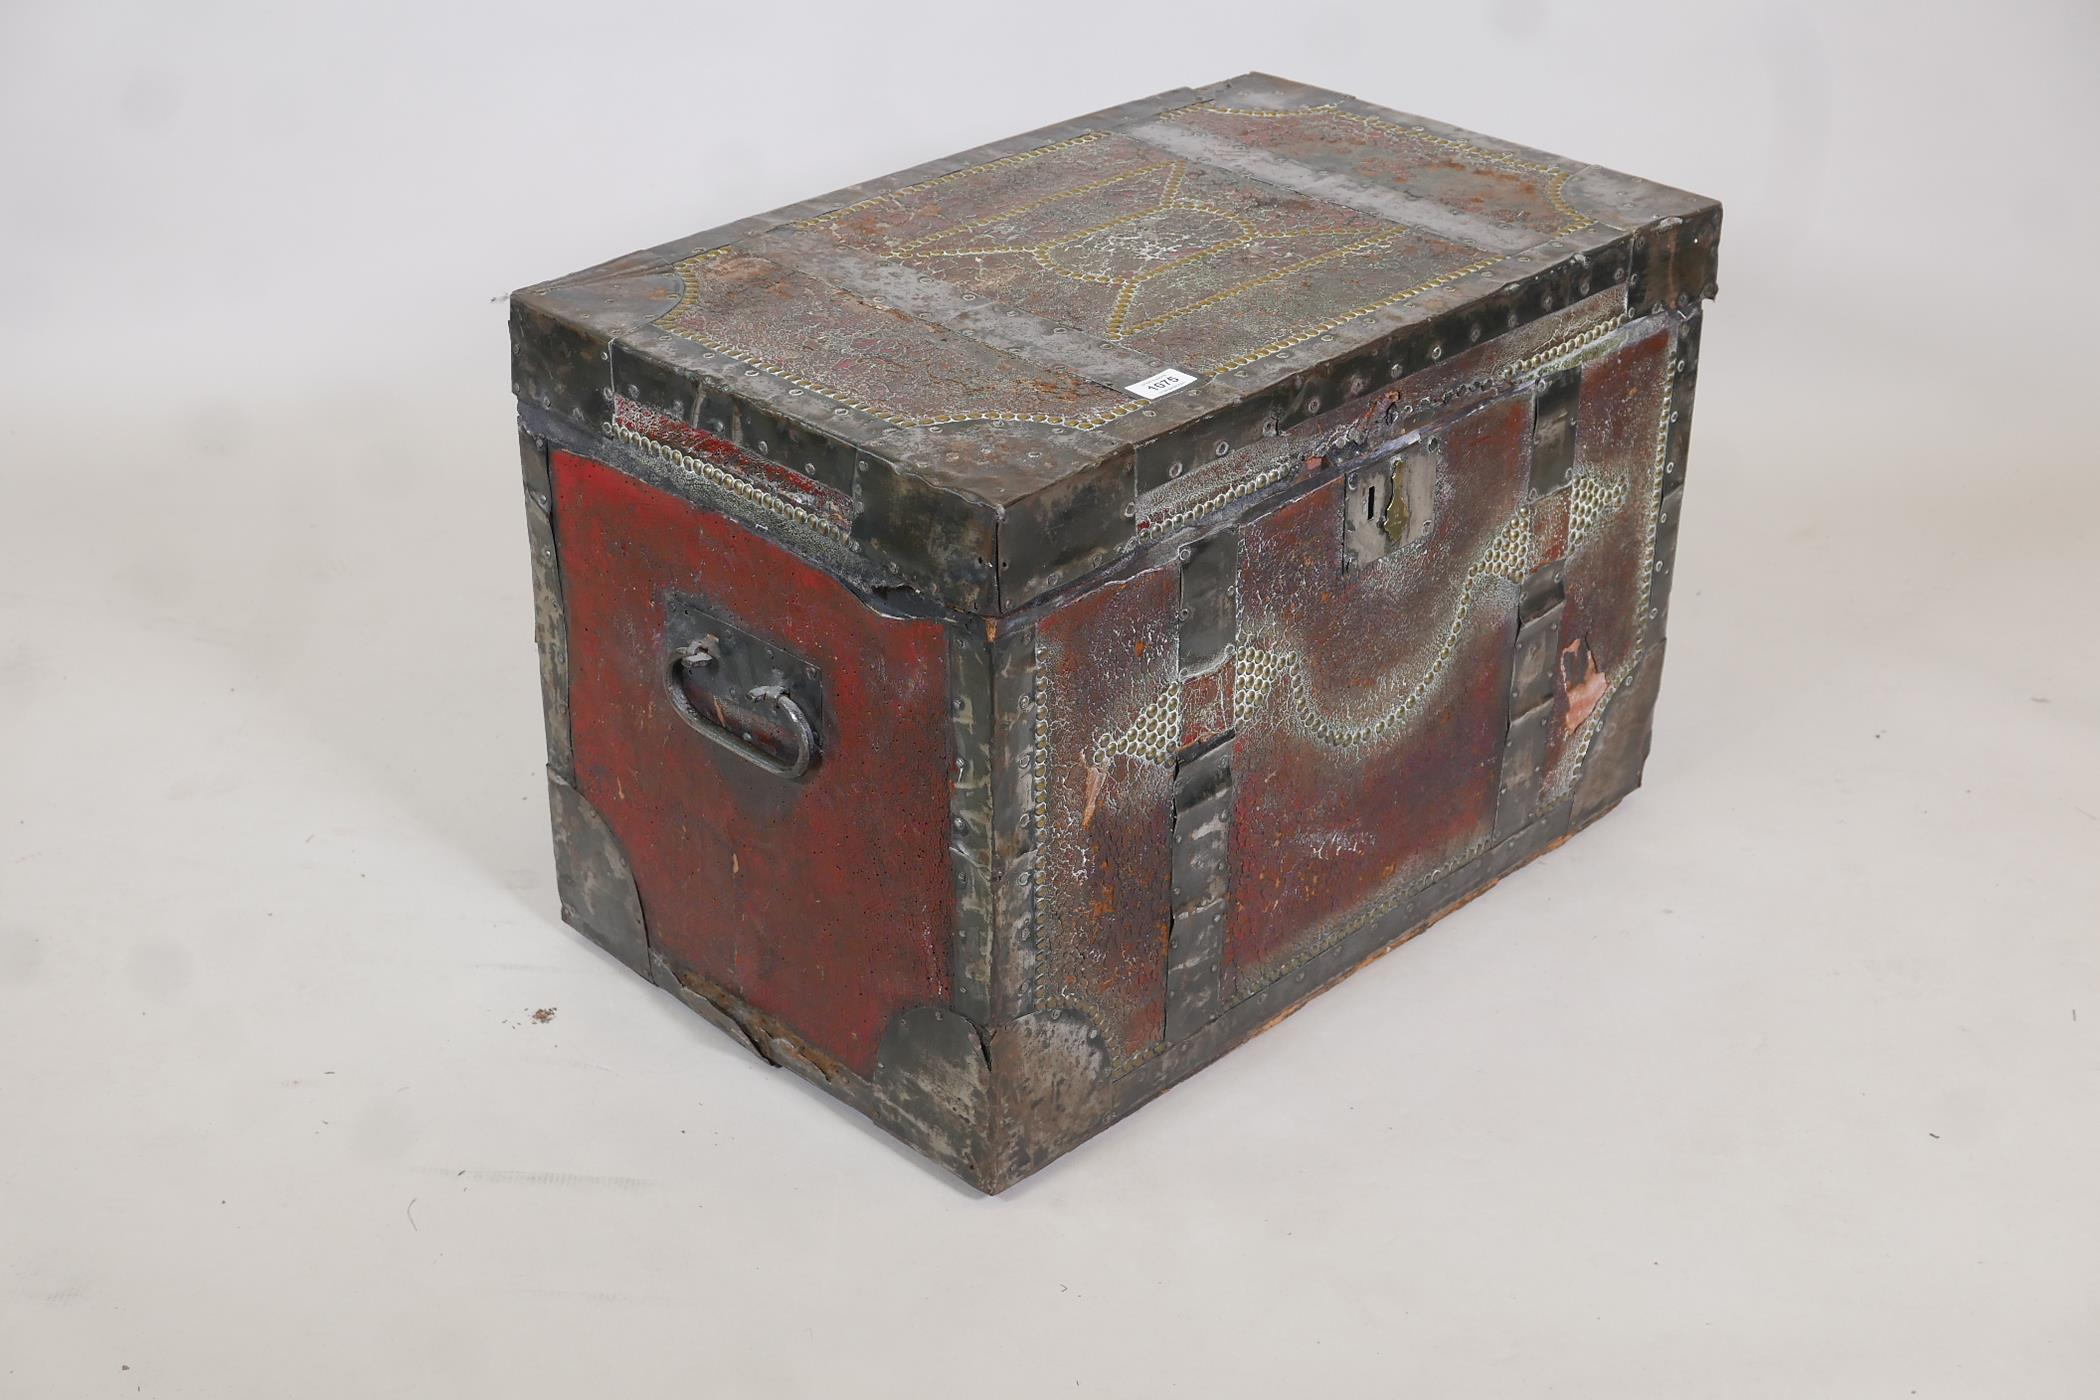 An early C19th painted leather trunk with brass stud decoration and steel straps, original papered